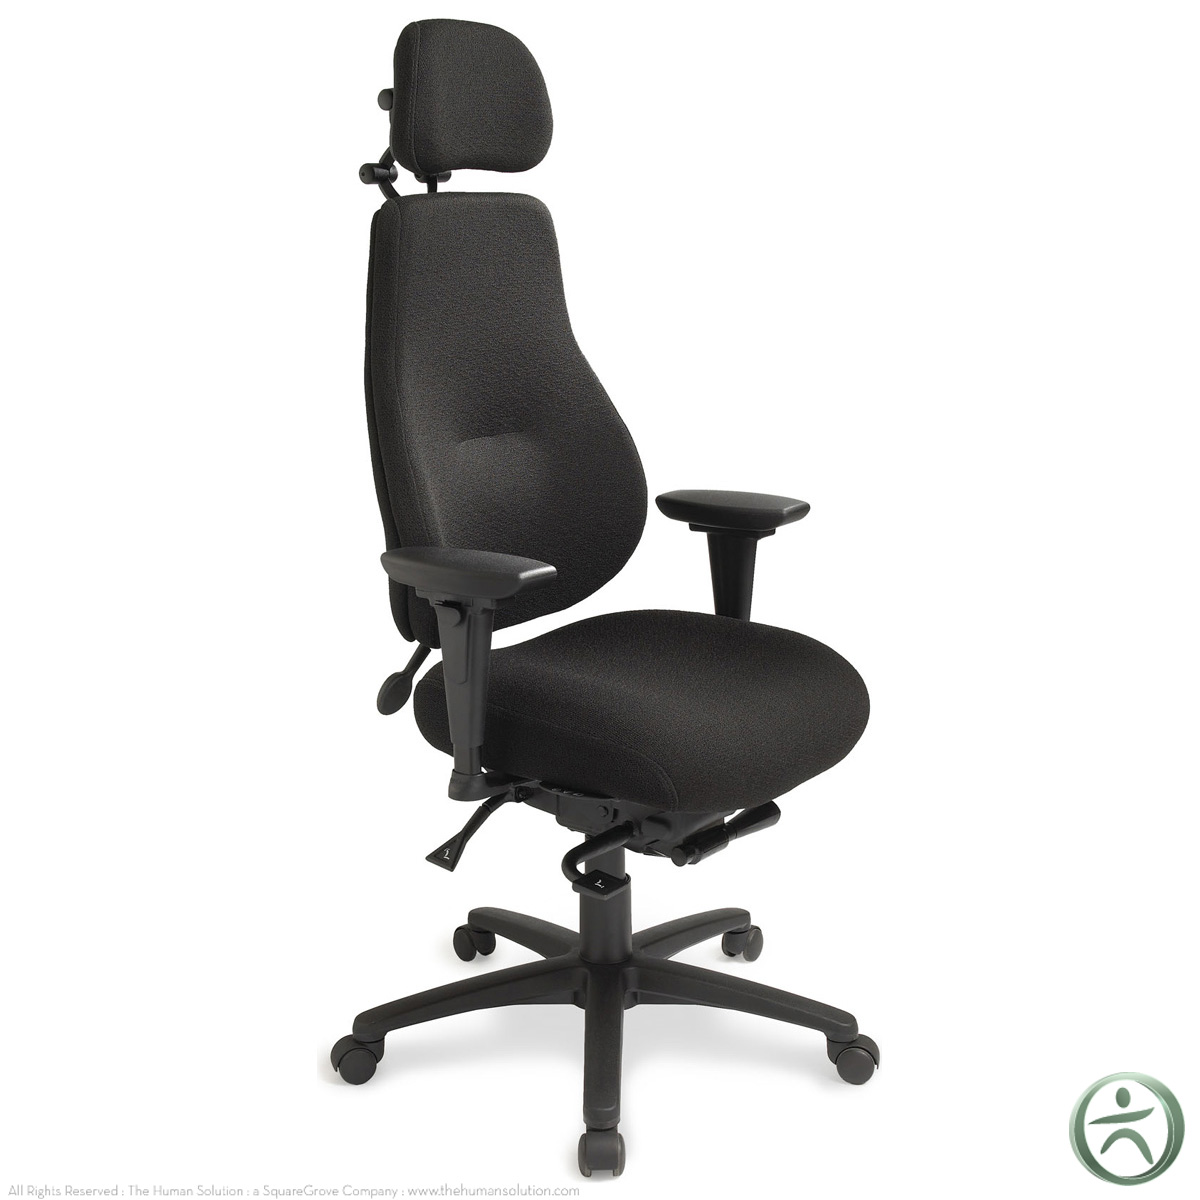 Ergonomic Office Chairs Shop Ergocentric Mycentric Ergonomic Office Chair